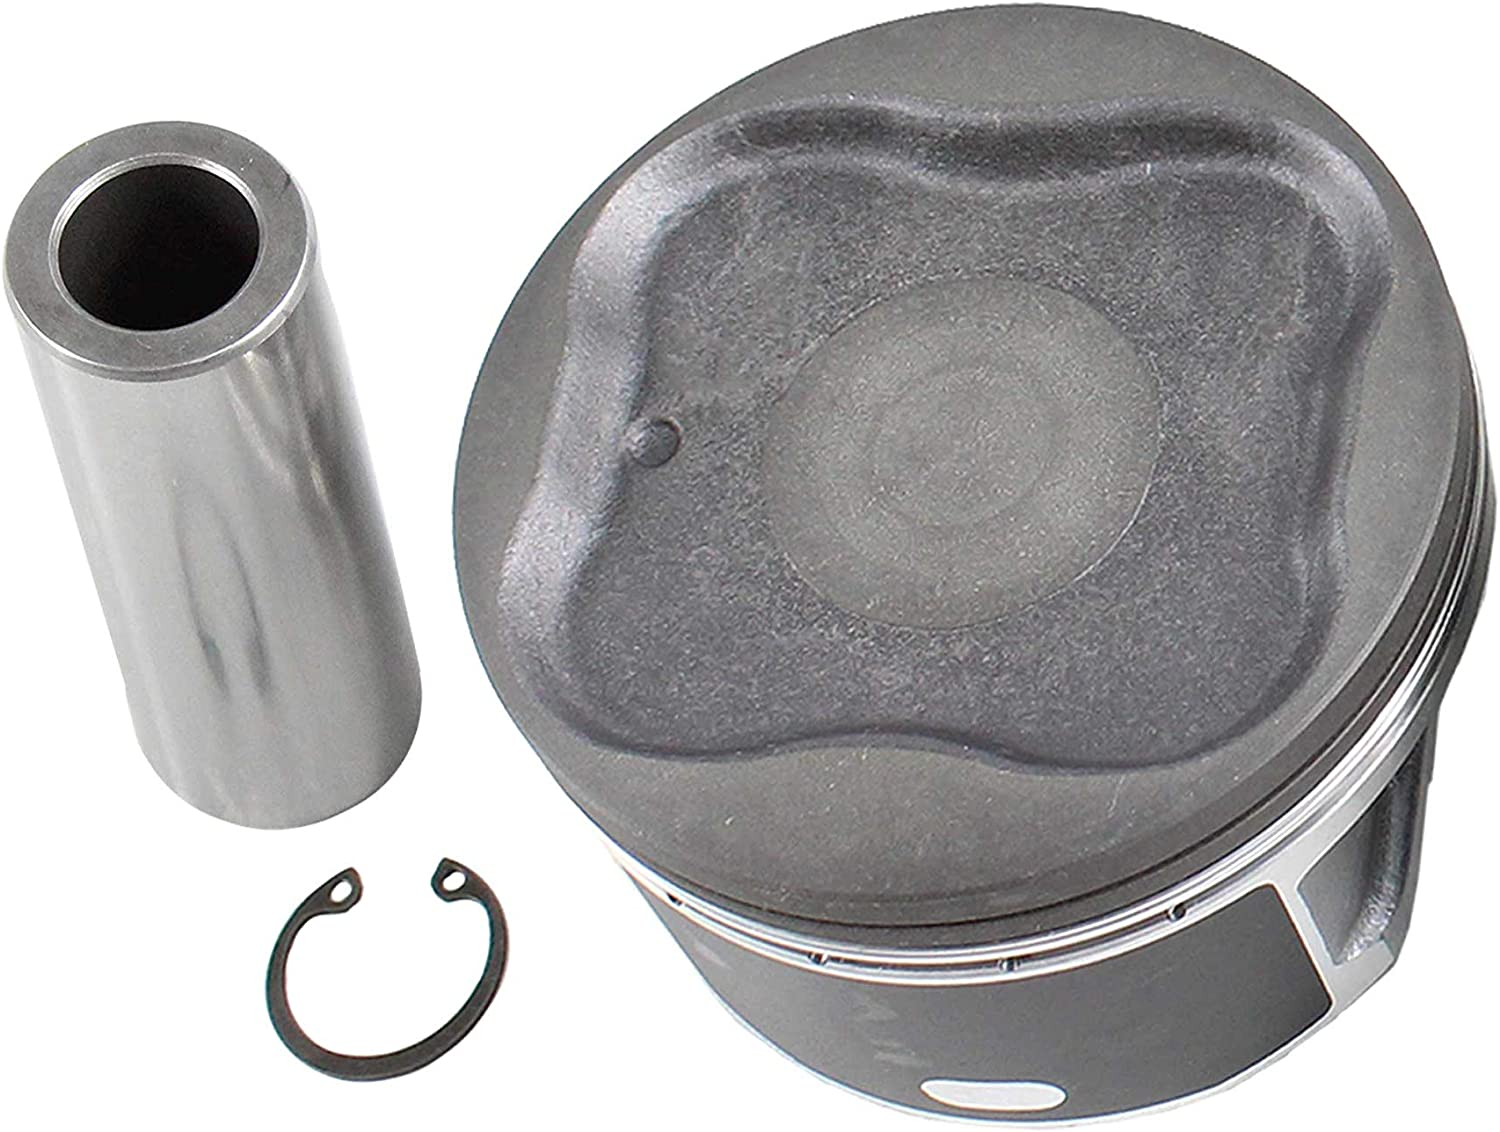 Tundra FJ Cruiser// 4.0L V6 DOHC//Naturally Aspirated DNJ P969 Piston Set//For 03-15 Toyota//Tacoma 4Runner